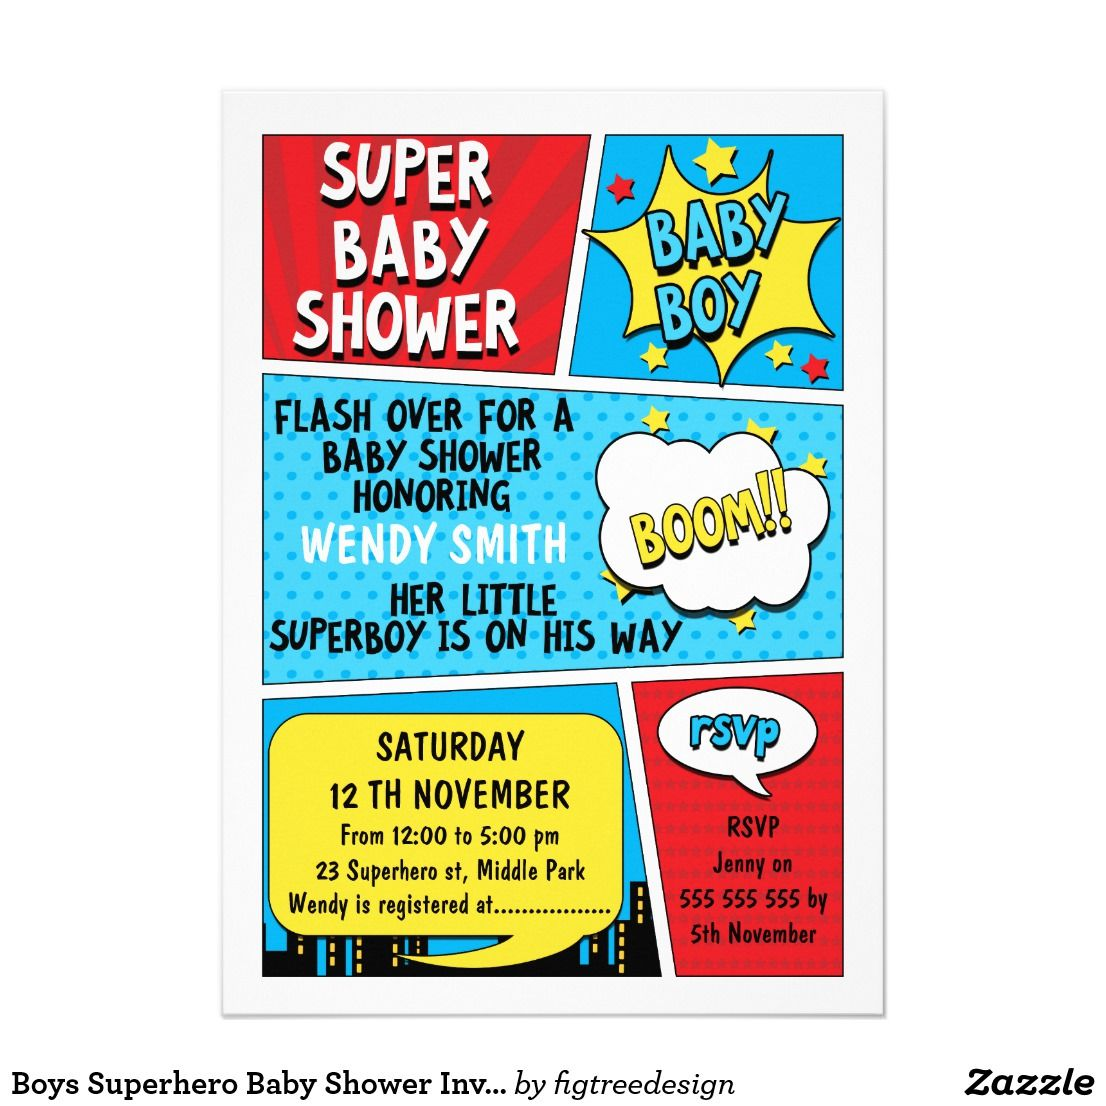 Boys Superhero Baby Shower Invitation | Williams 3rd B-Day ...